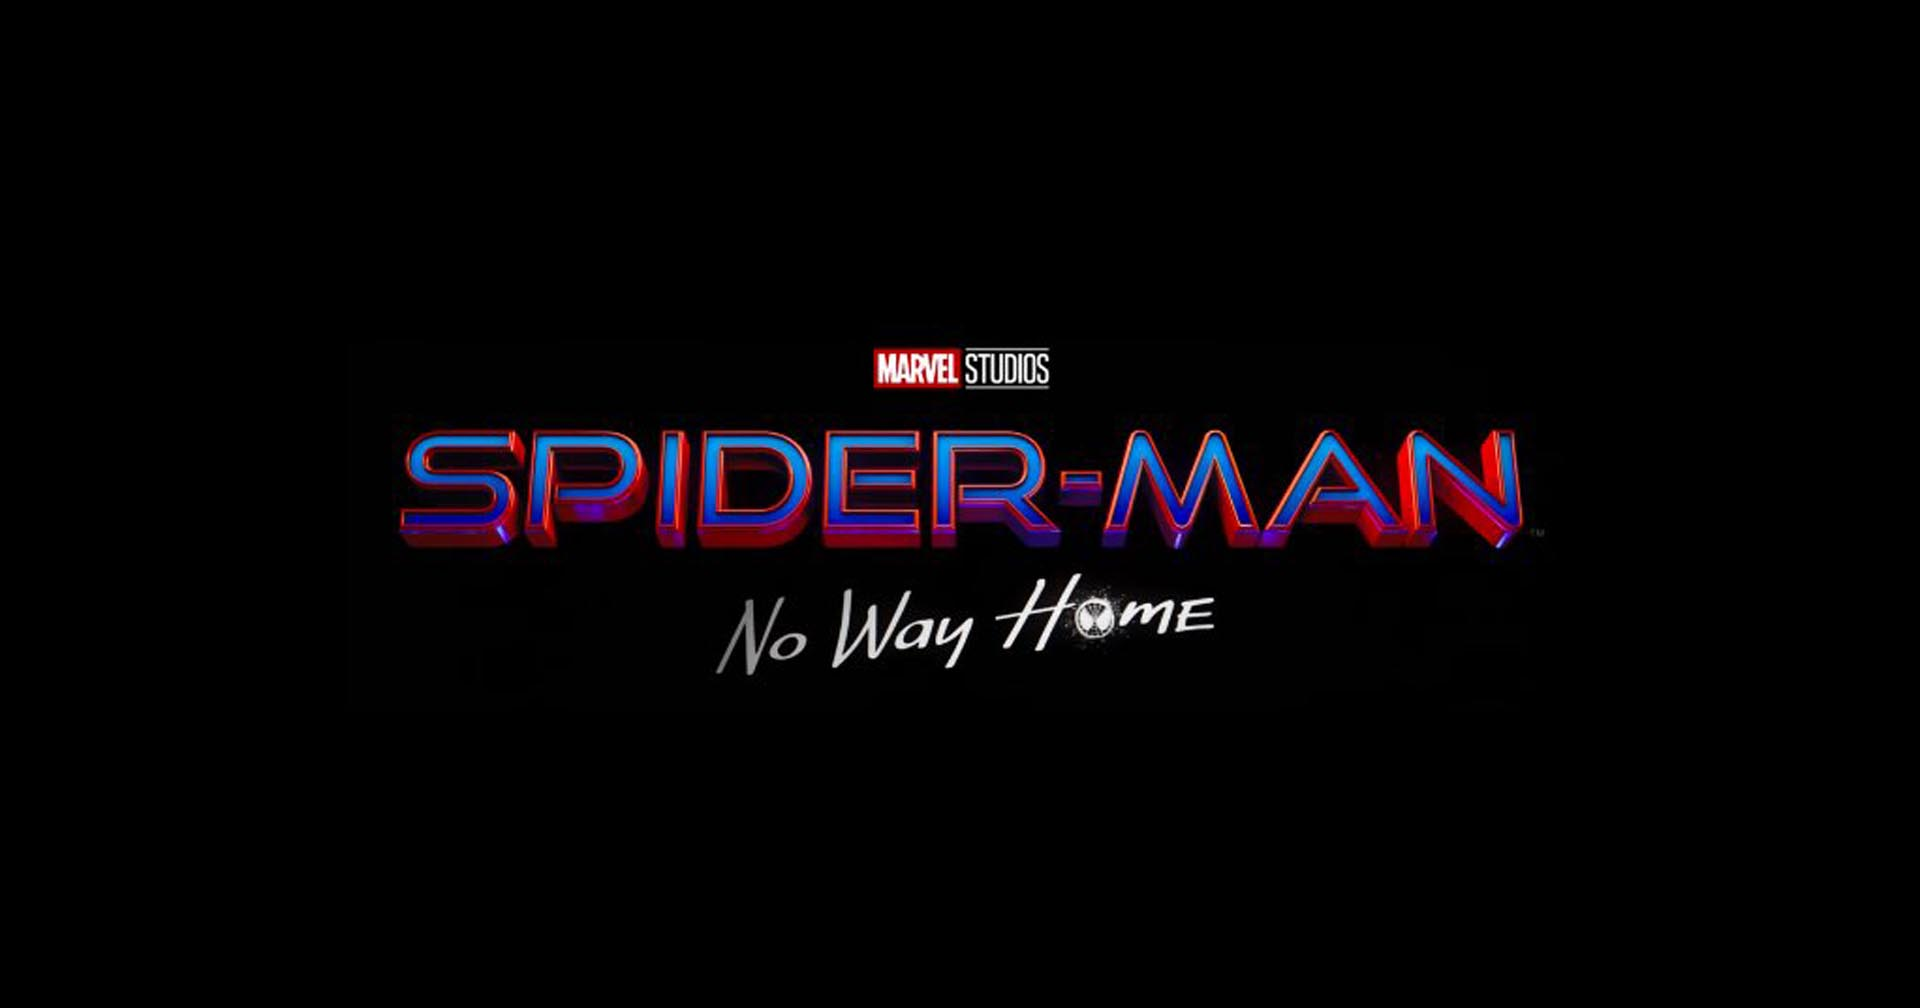 spiderman no way home, Sony pictures, marvel